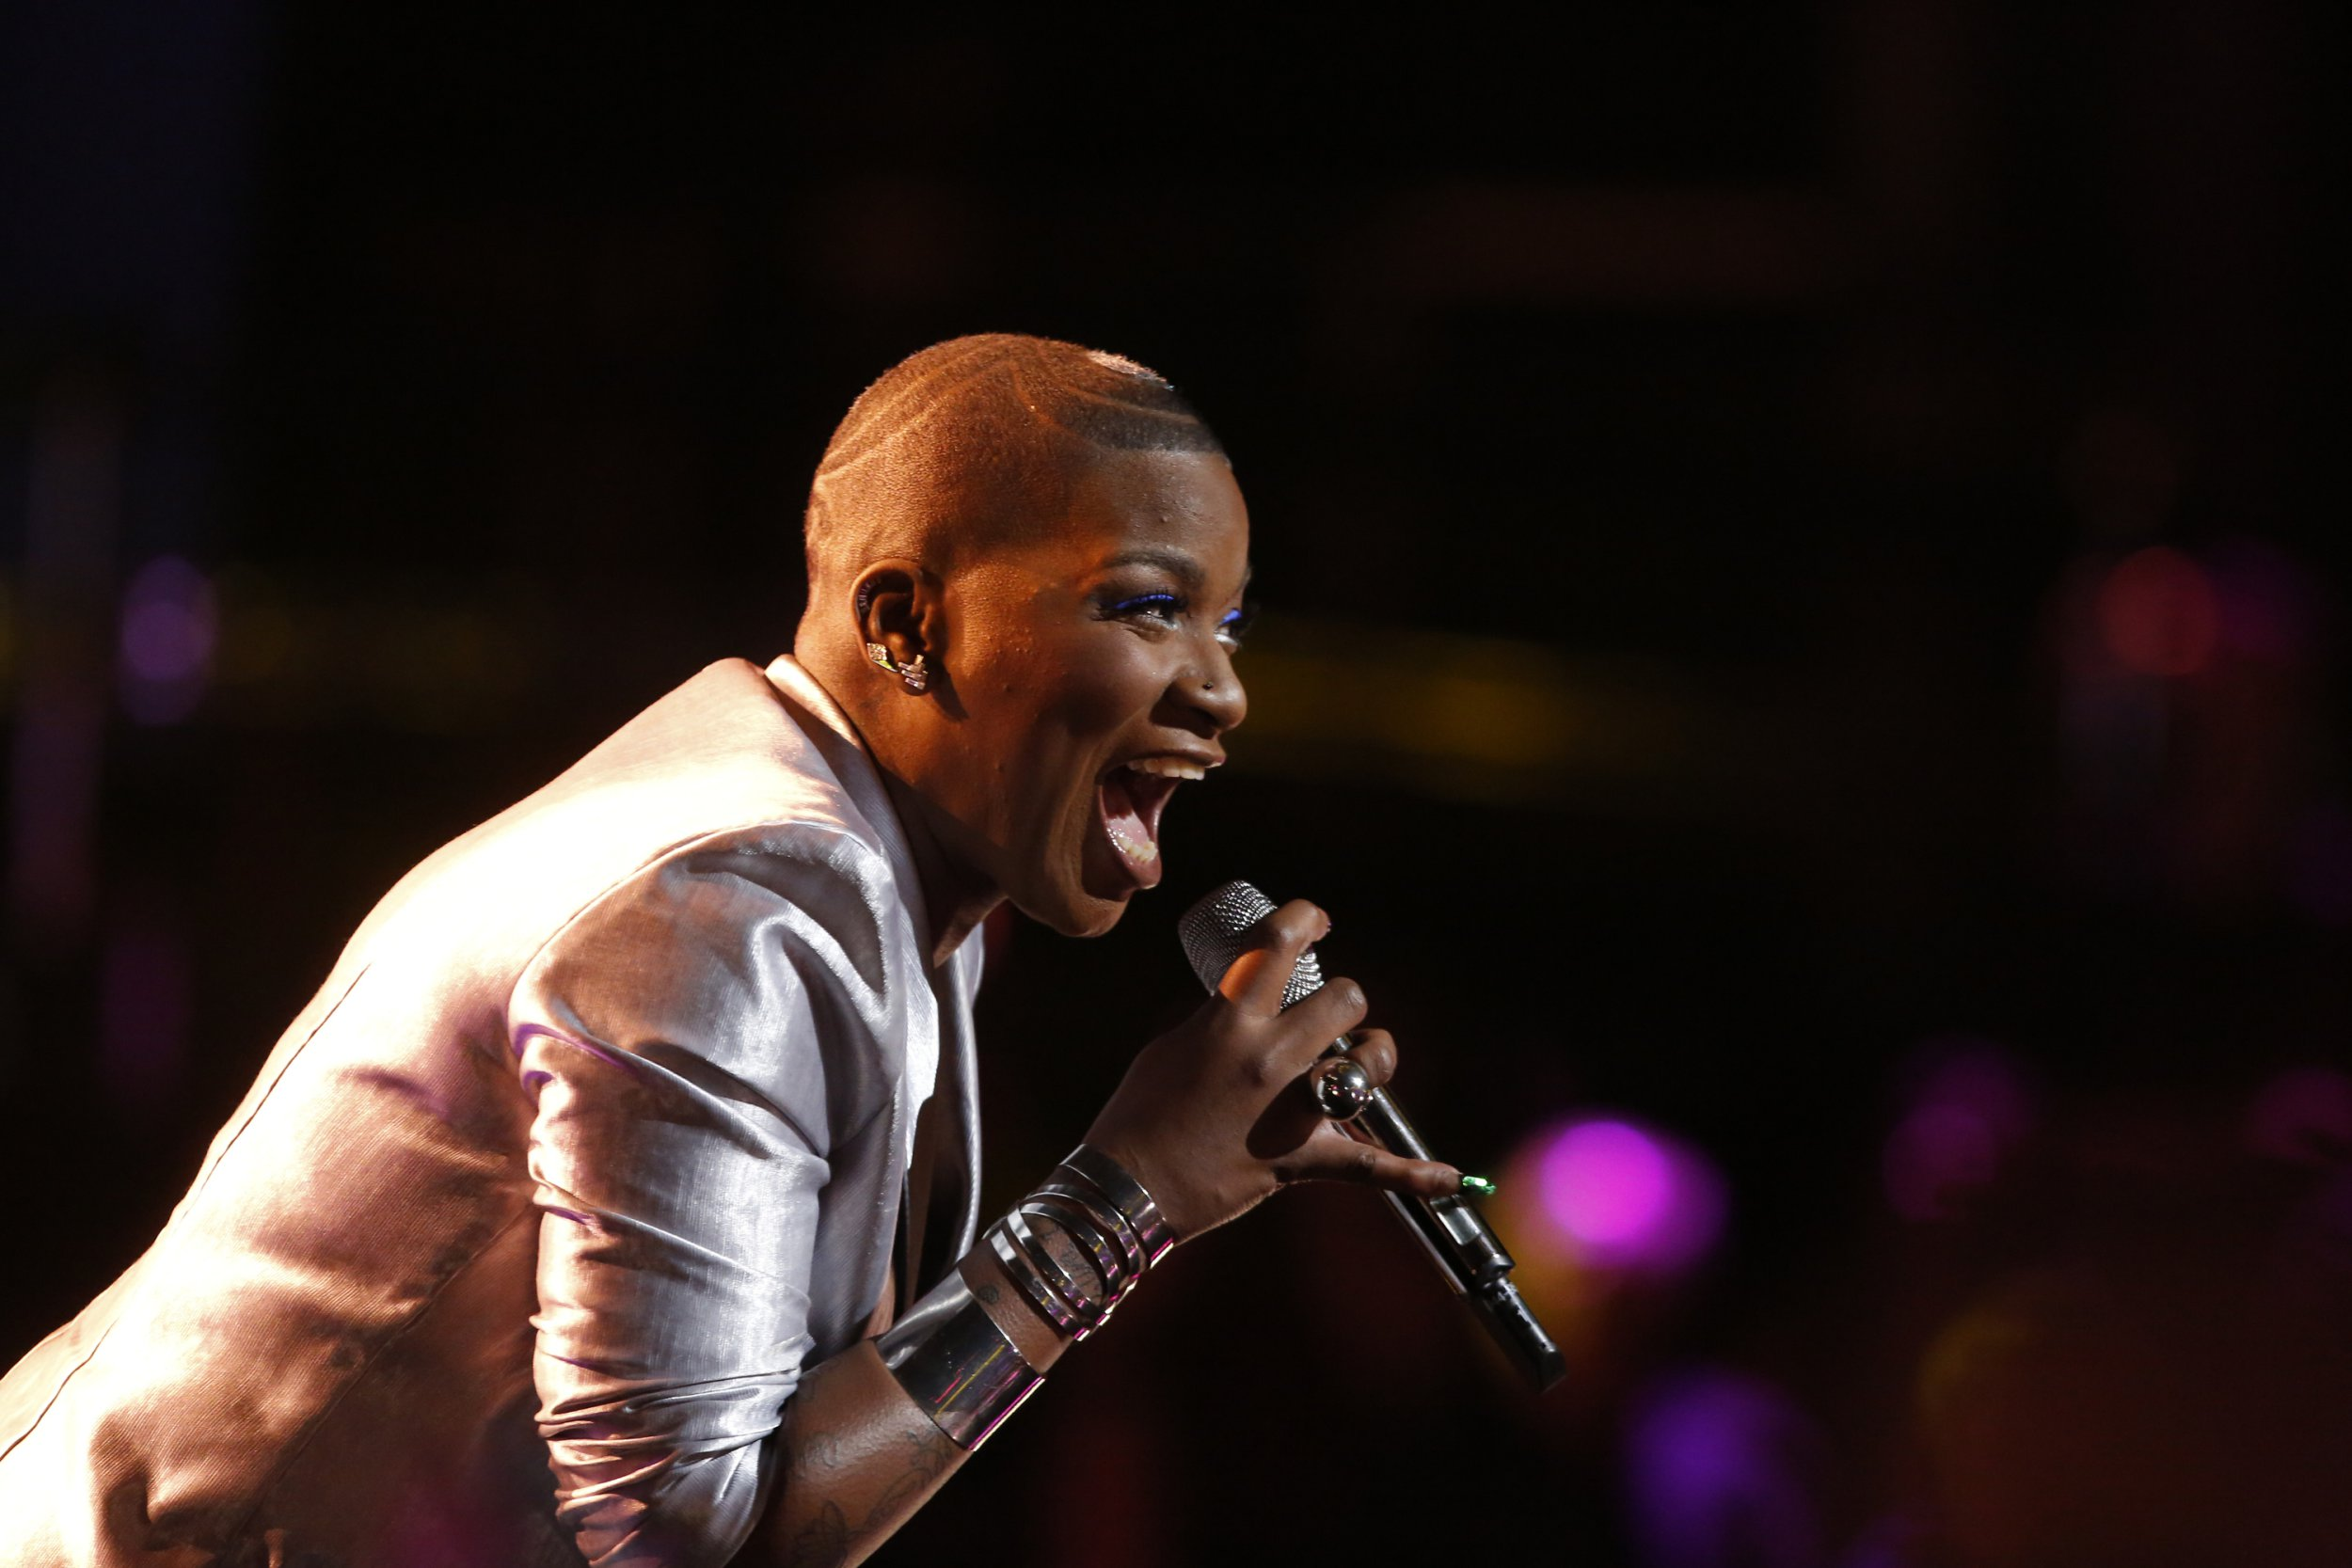 The Voice star Janice Freeman's cause of death revealed as pulmonary embolism and lupus